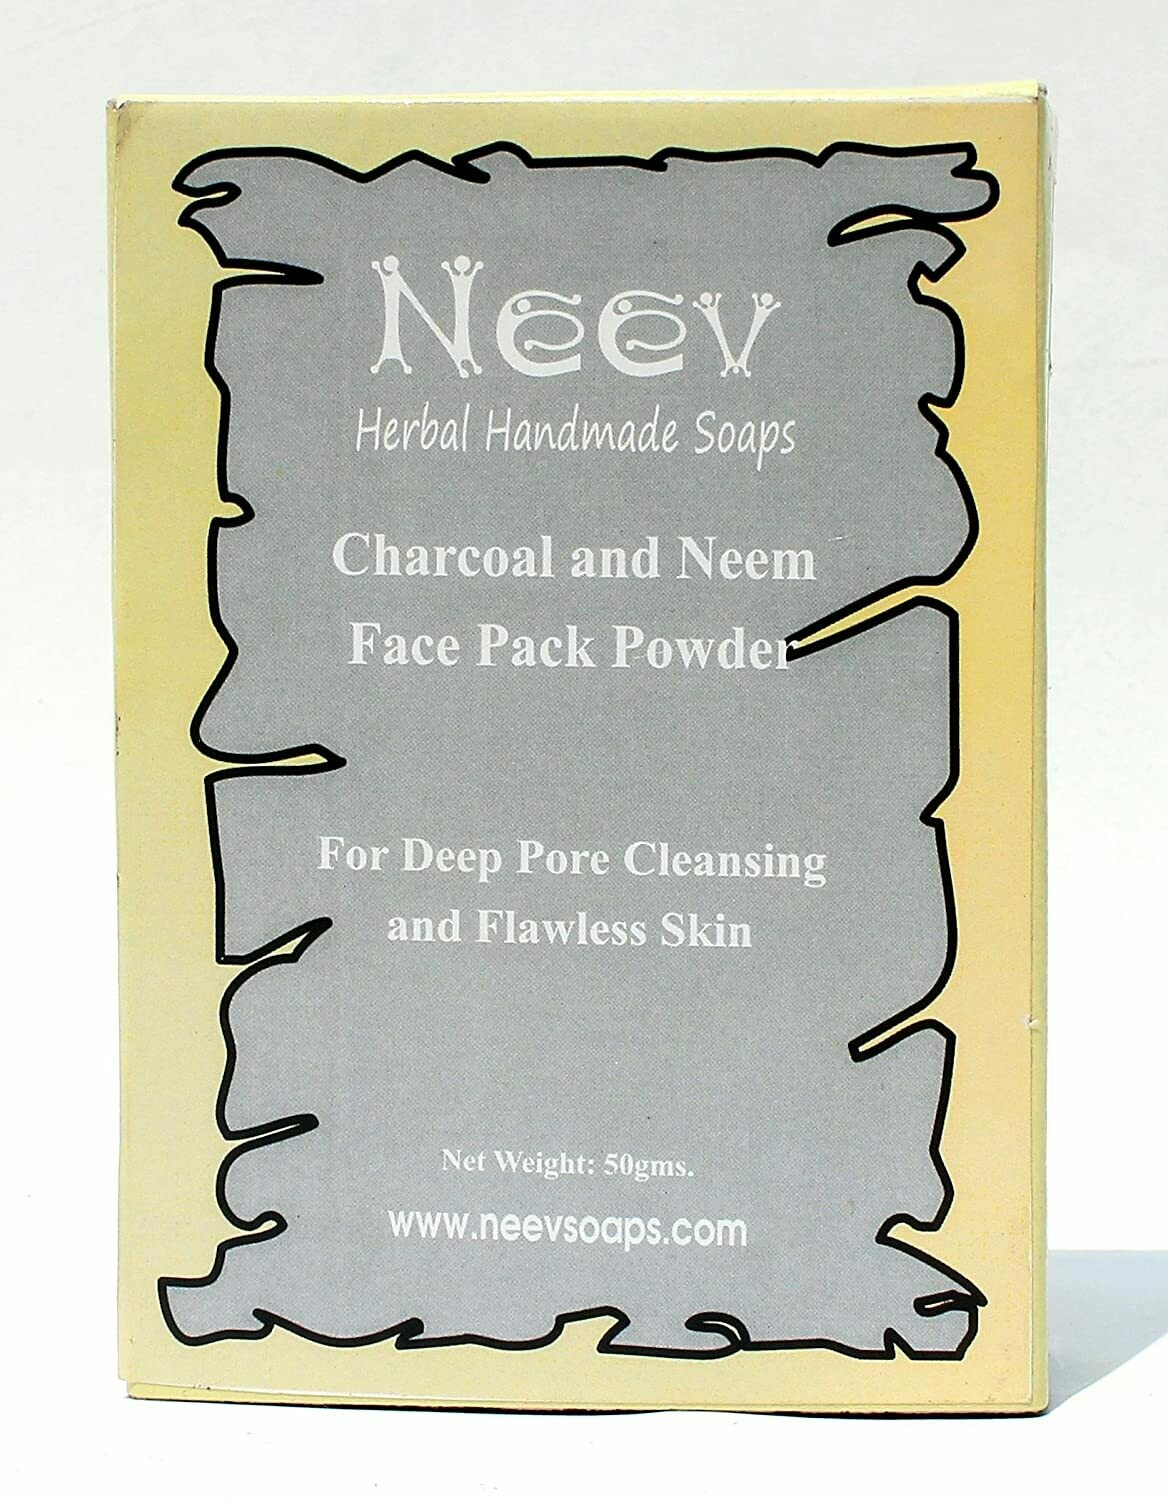 Neev Charcoal and Neem Face Pack For Deep Pore Cleansing and Flawless Skin 50g